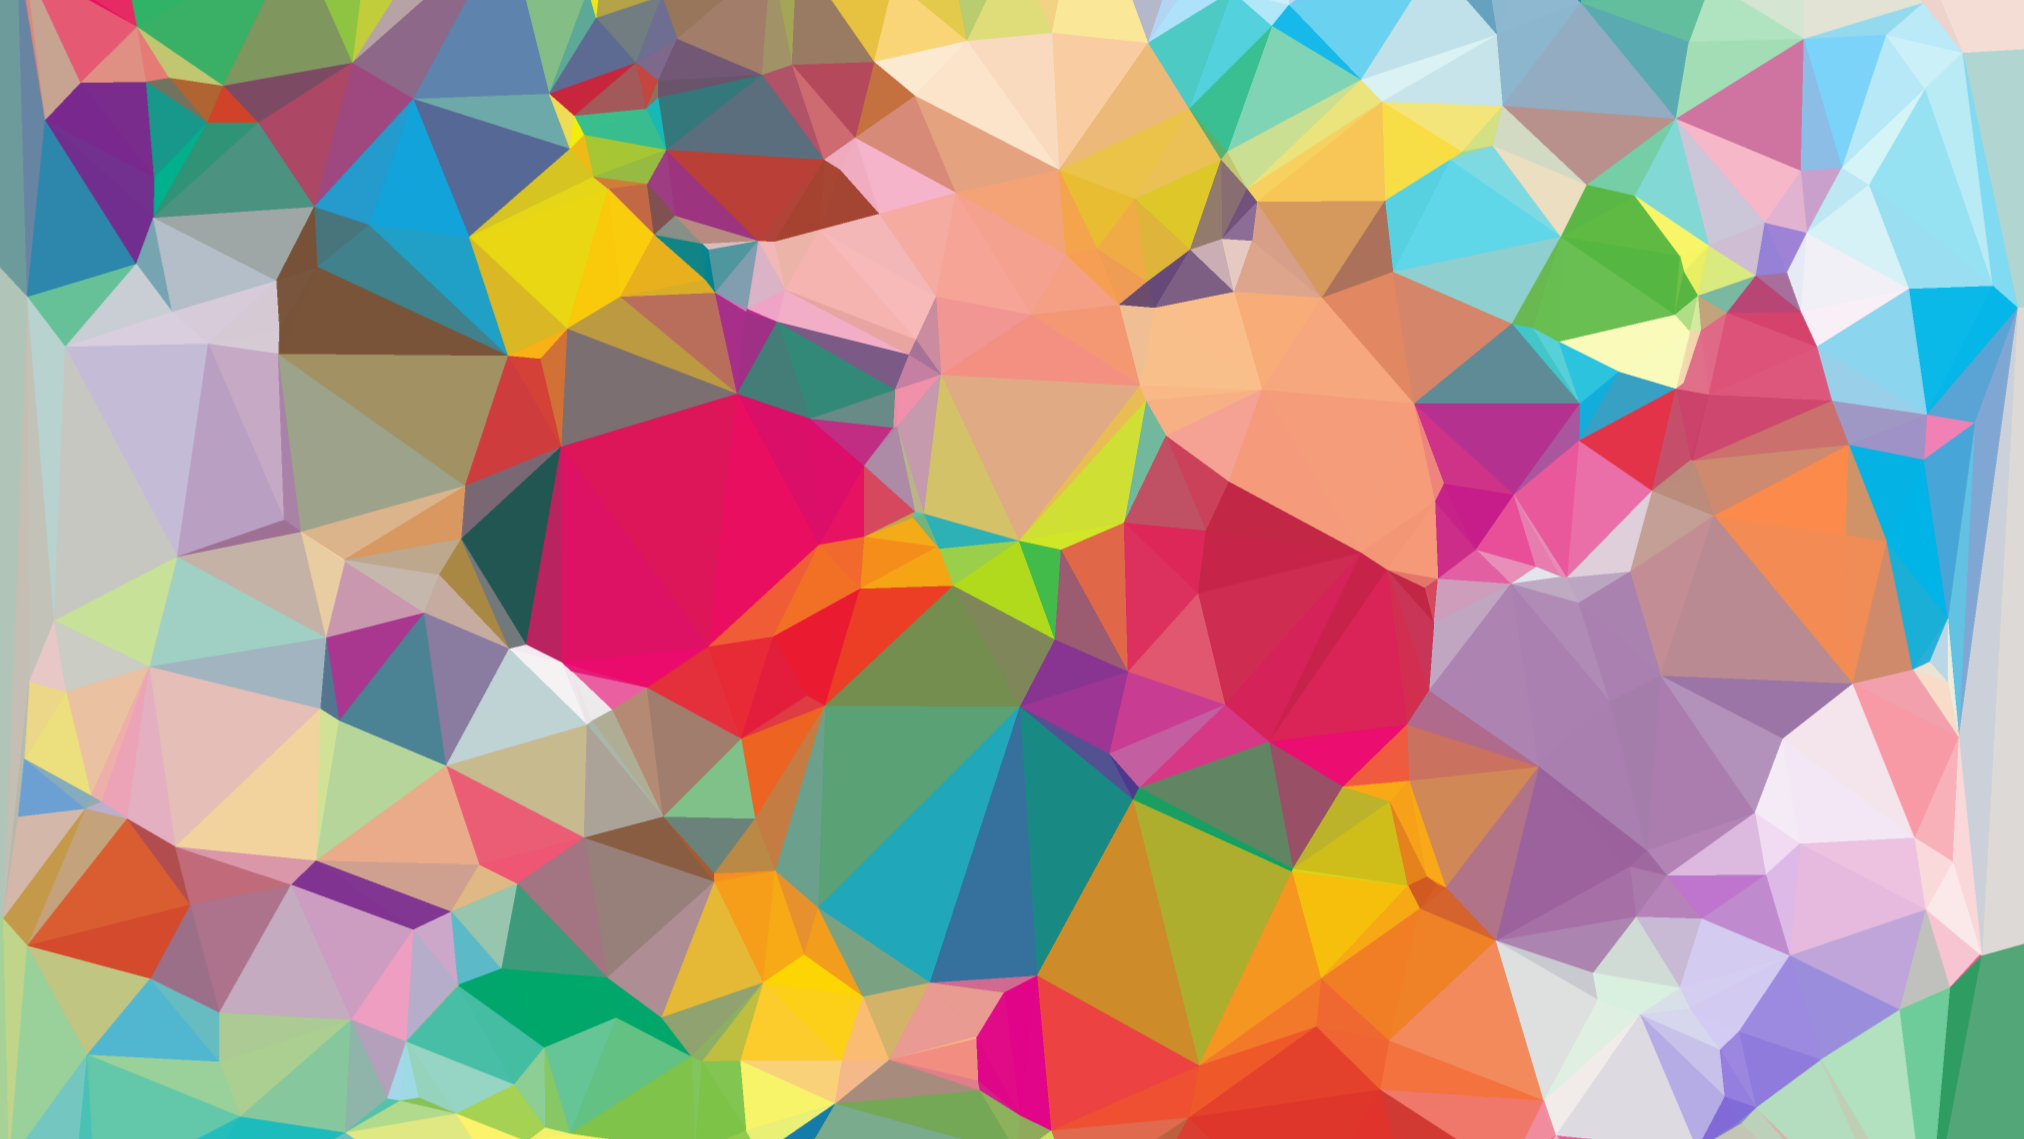 Wallpaper Geometric Color 21 2K UHD By AIRWORLDKING On